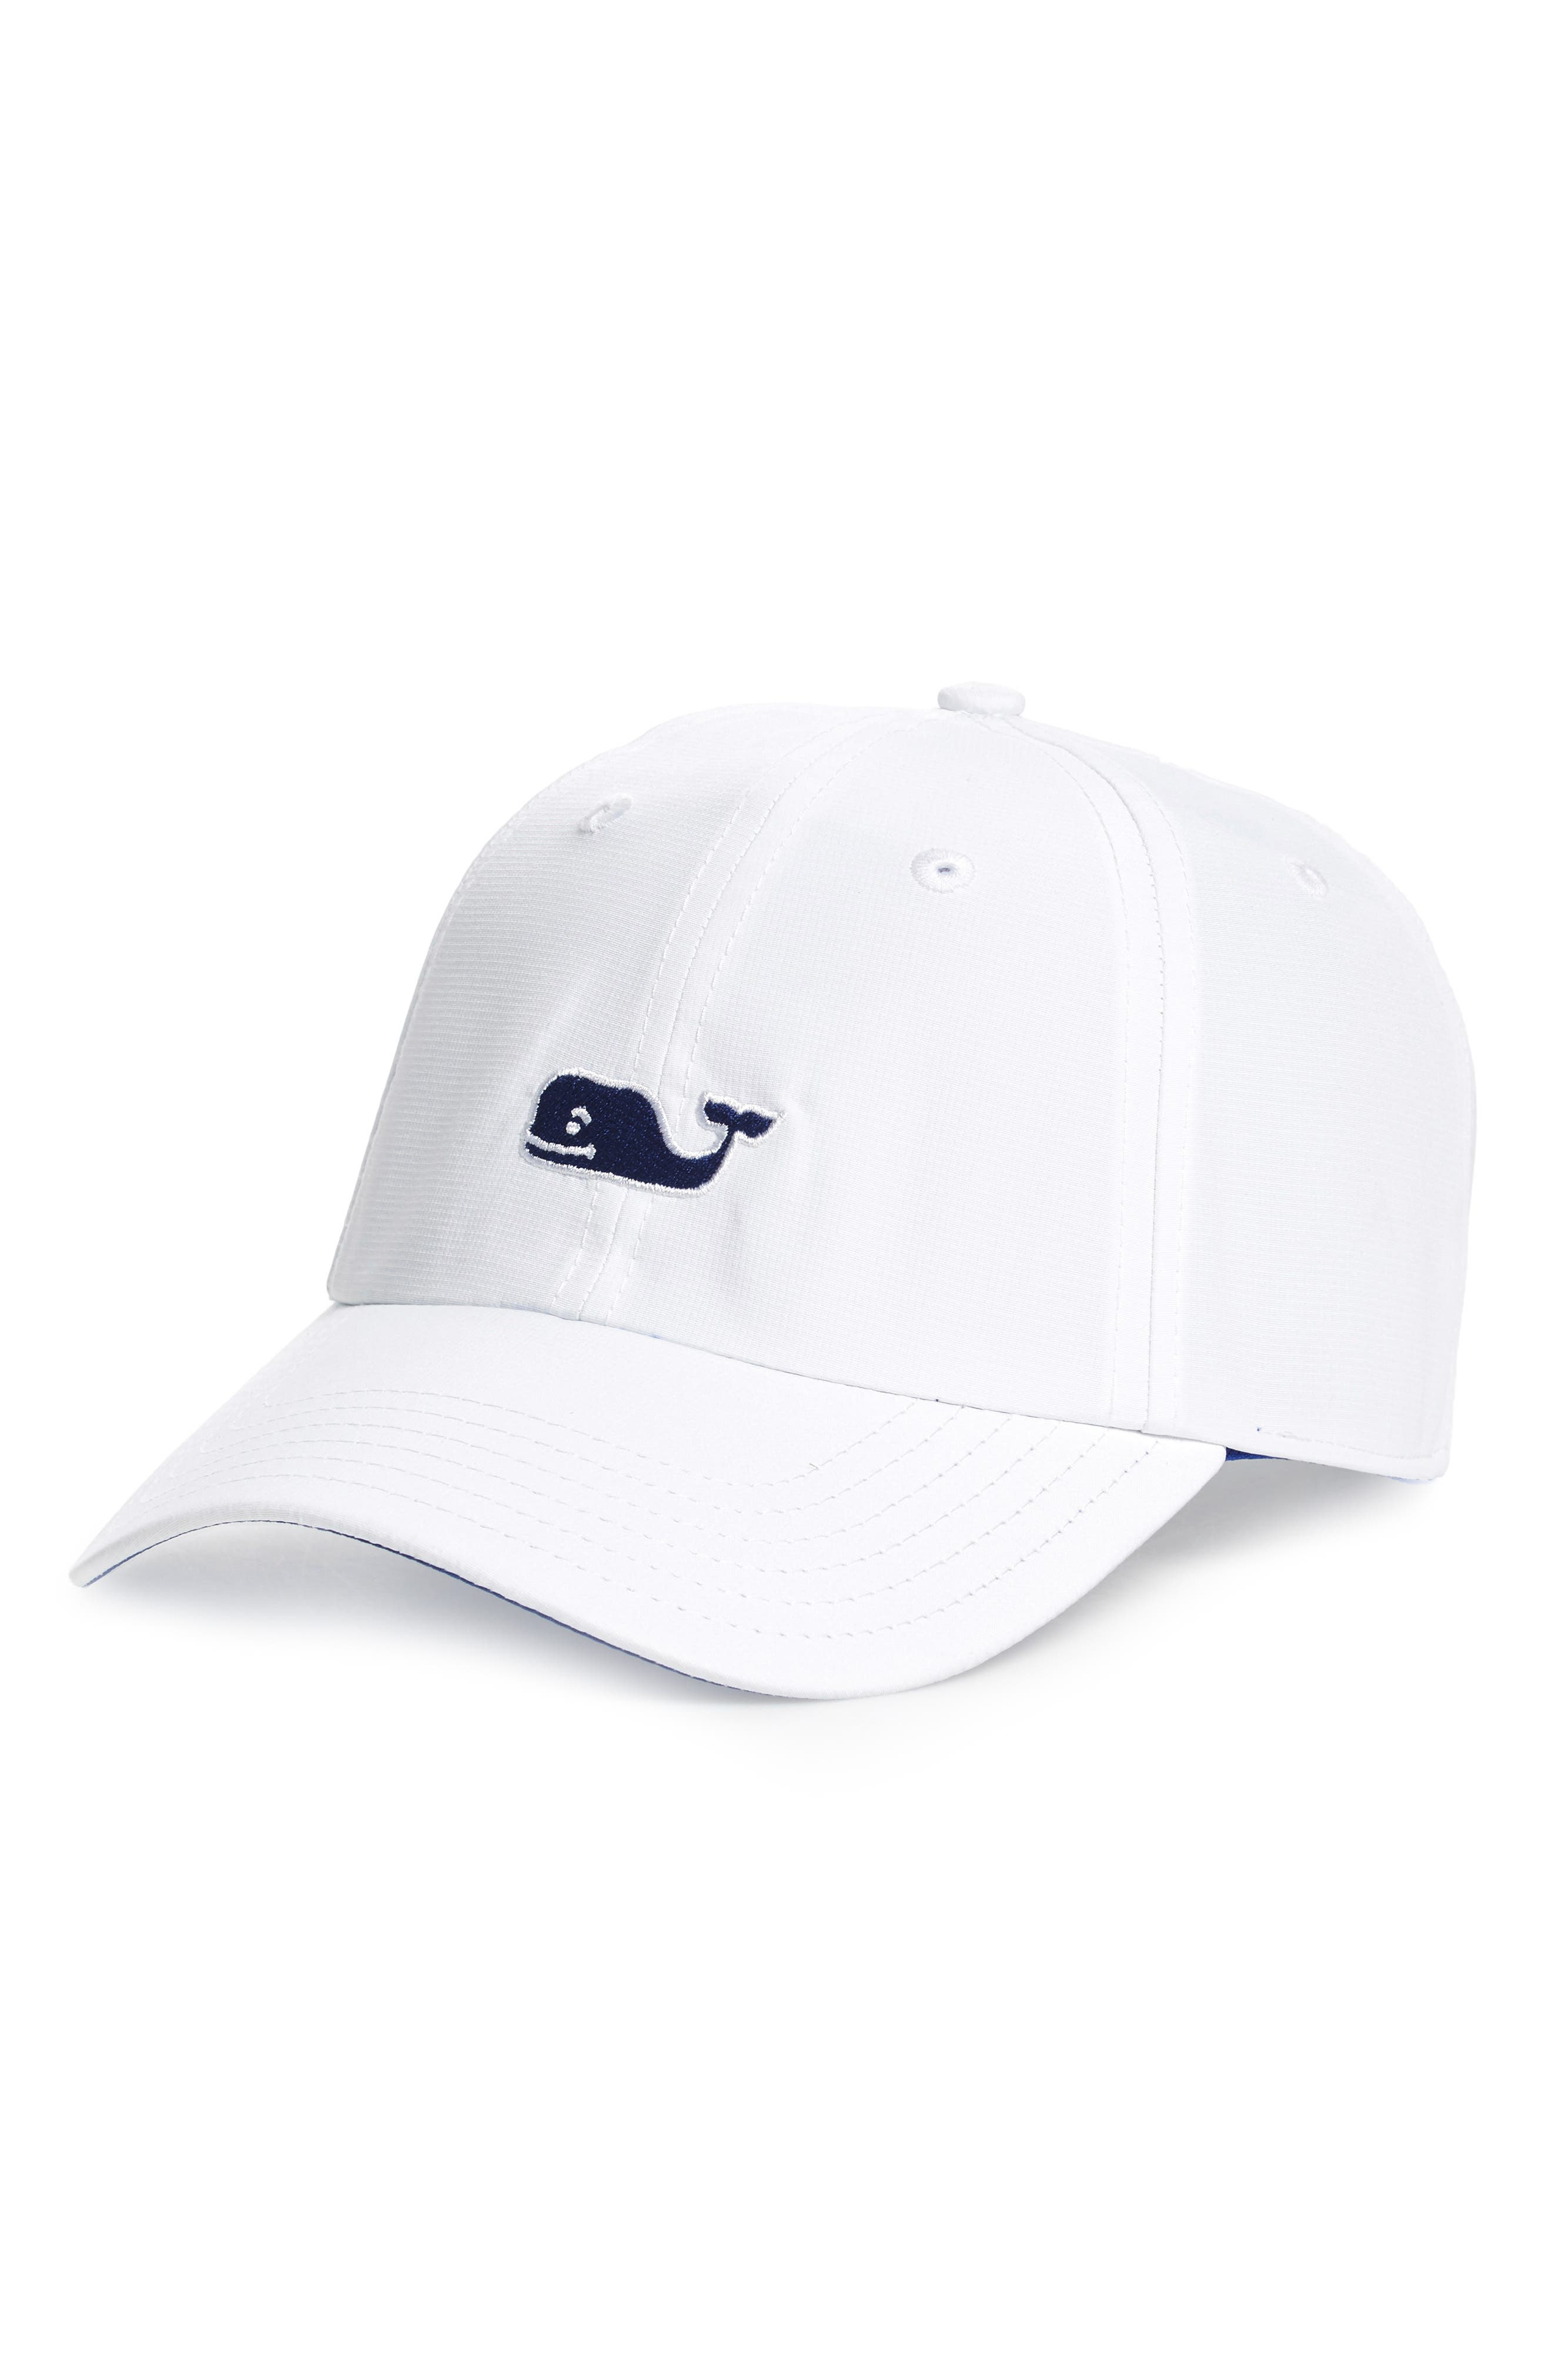 Vineyard Vines Lrage Whale Performance Baseball Cap